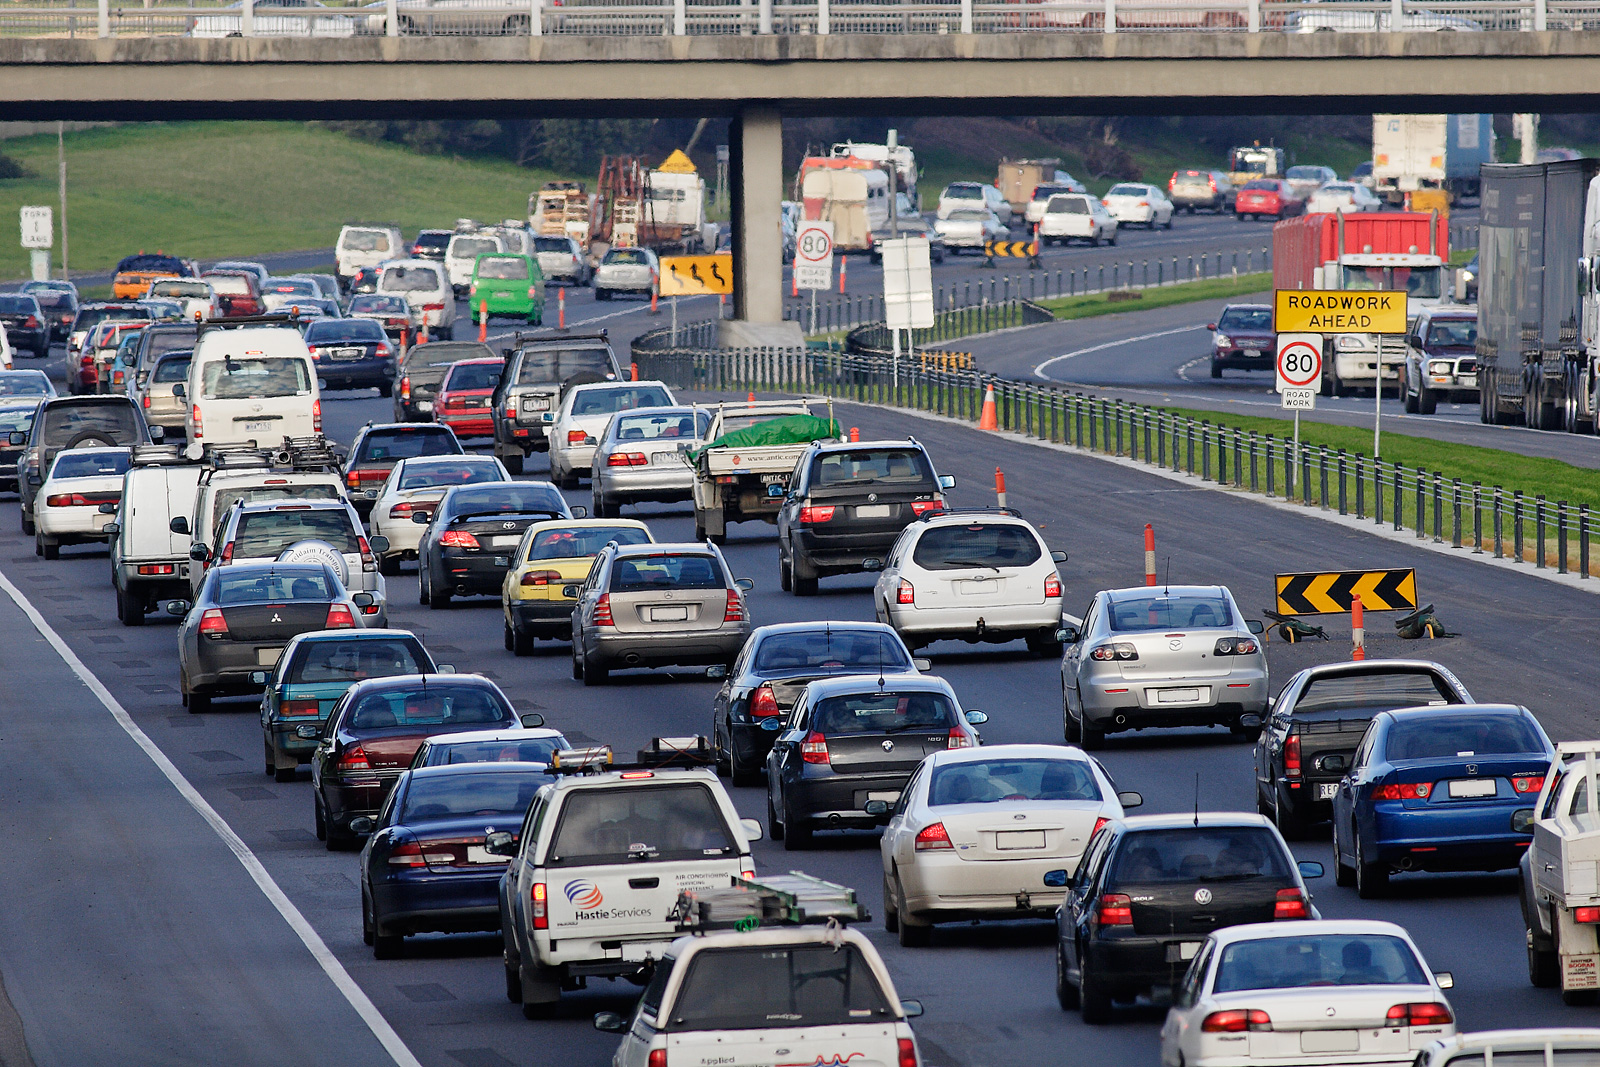 File:Peak hour traffic in melbourne.jpg - Wikipedia, the free ...